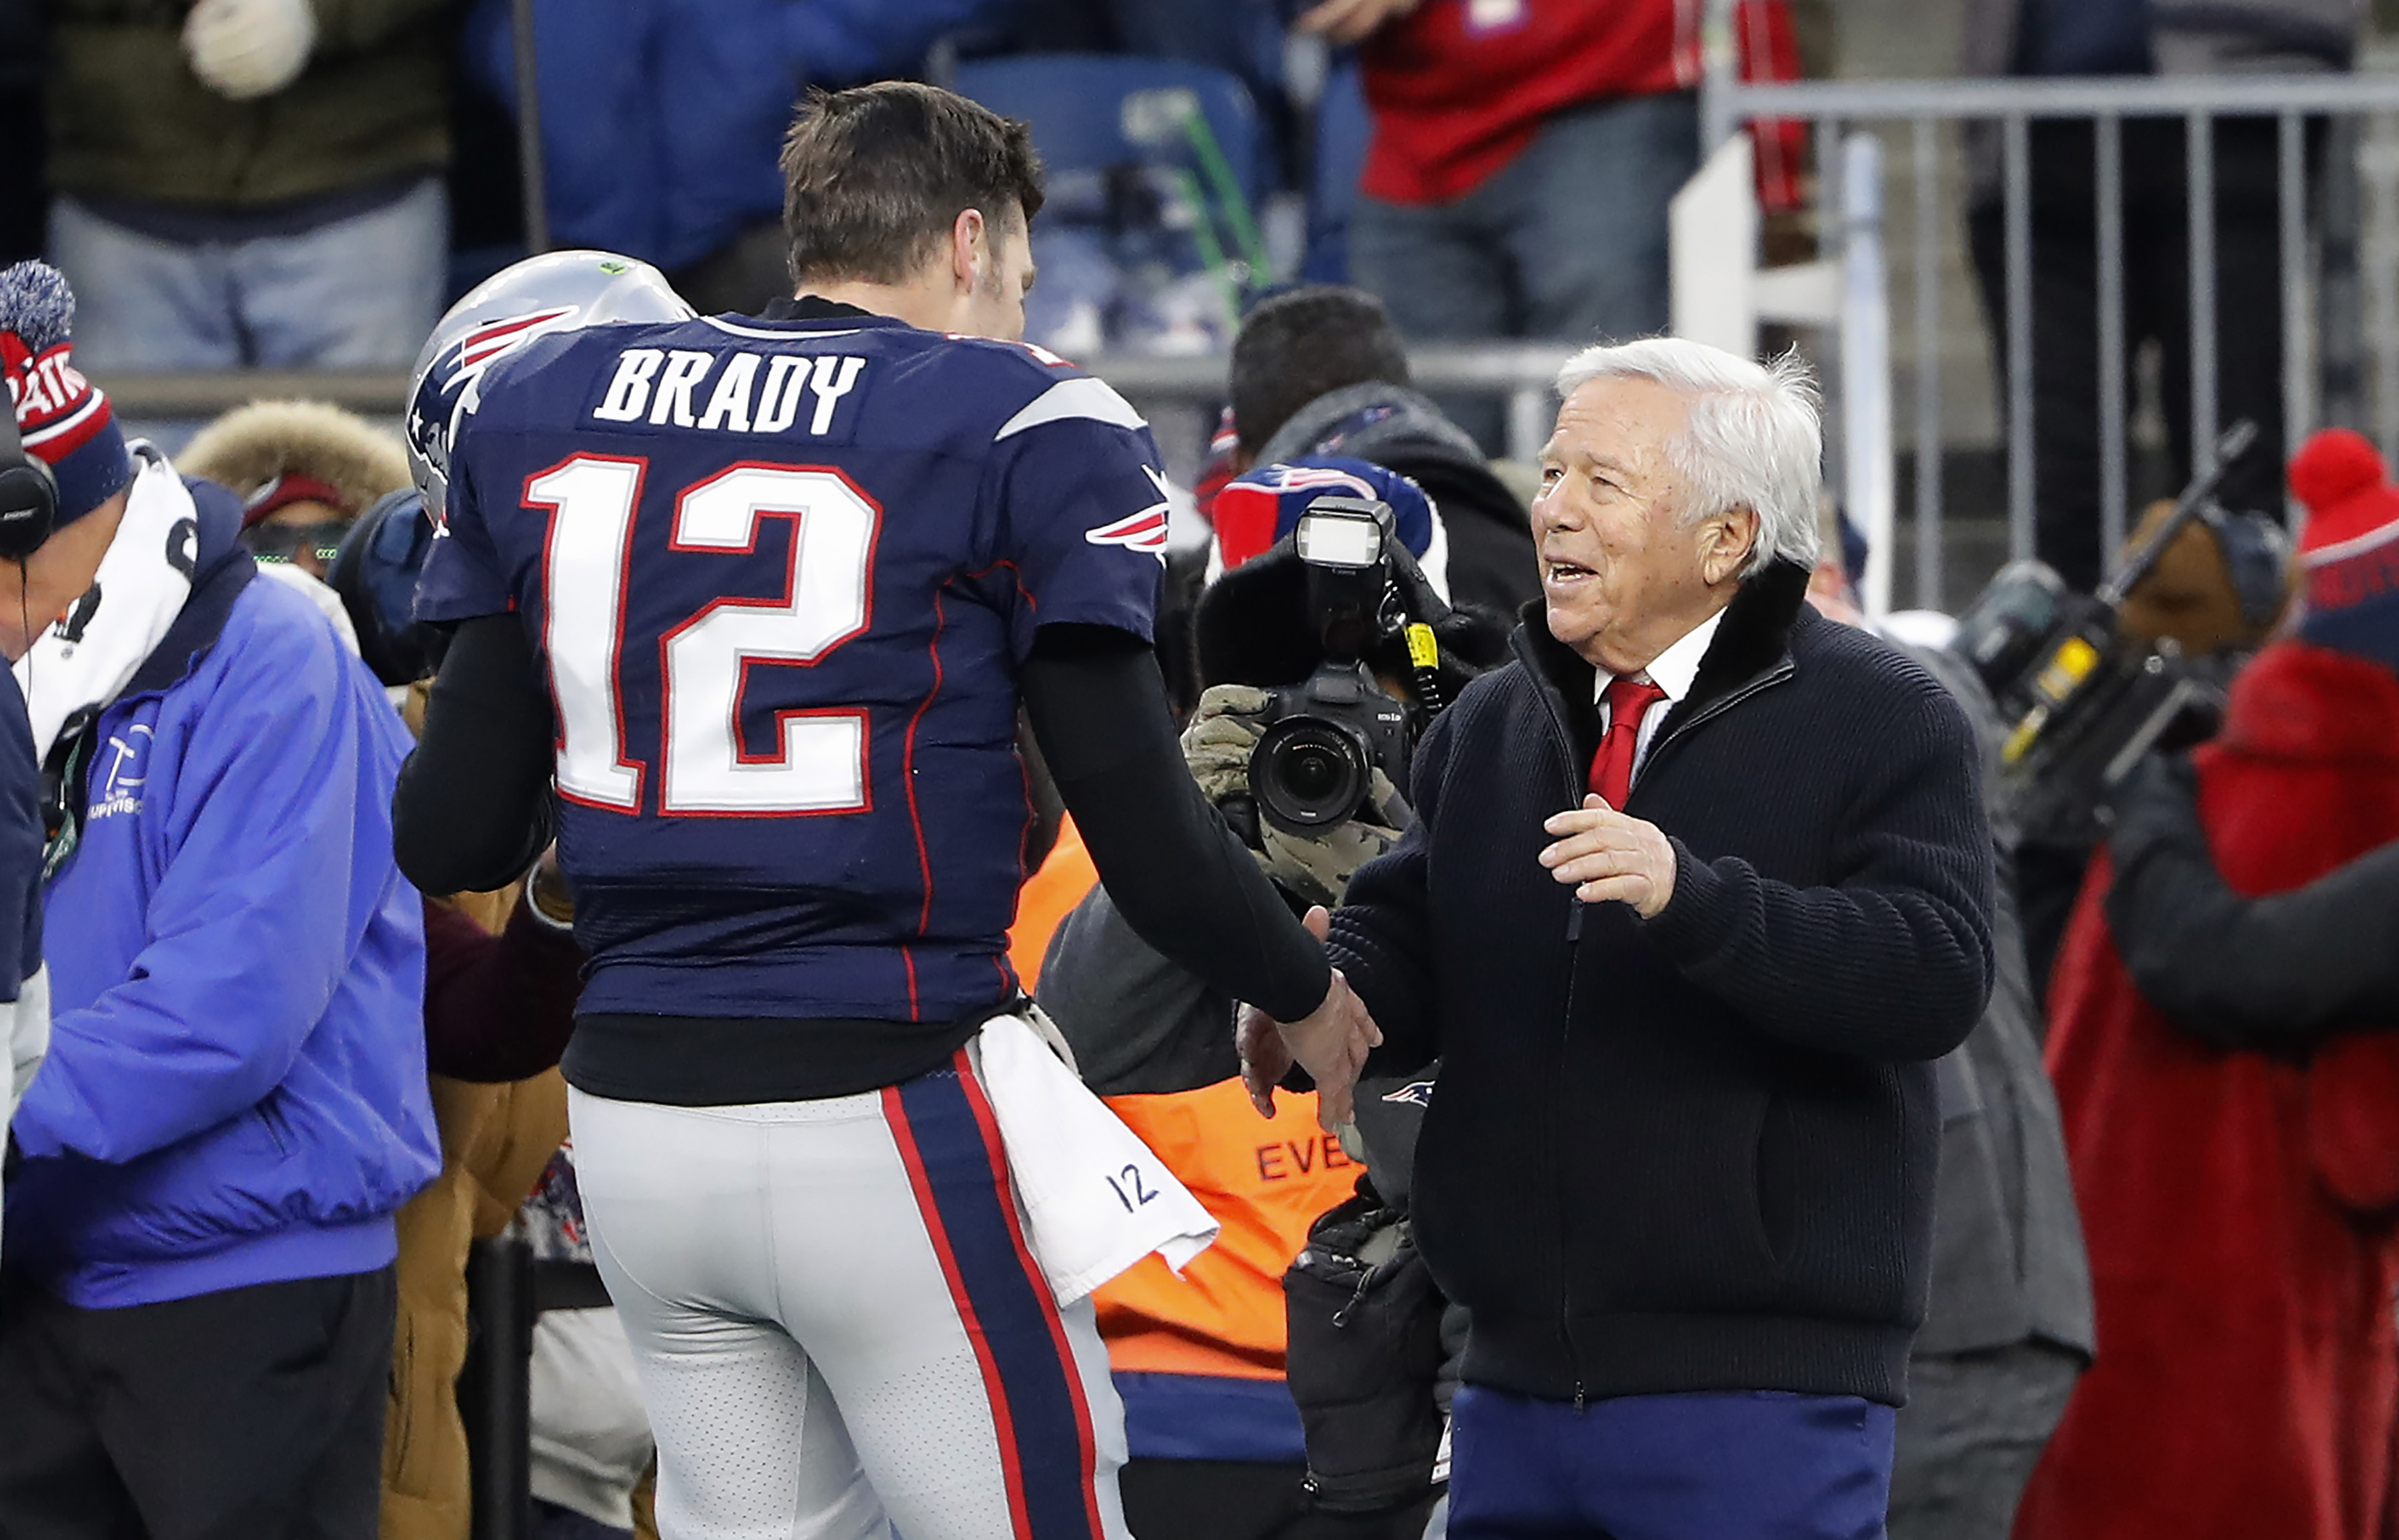 Robert Kraft appears to be upset with Tom Brady over recent negotiations in cryptic quote